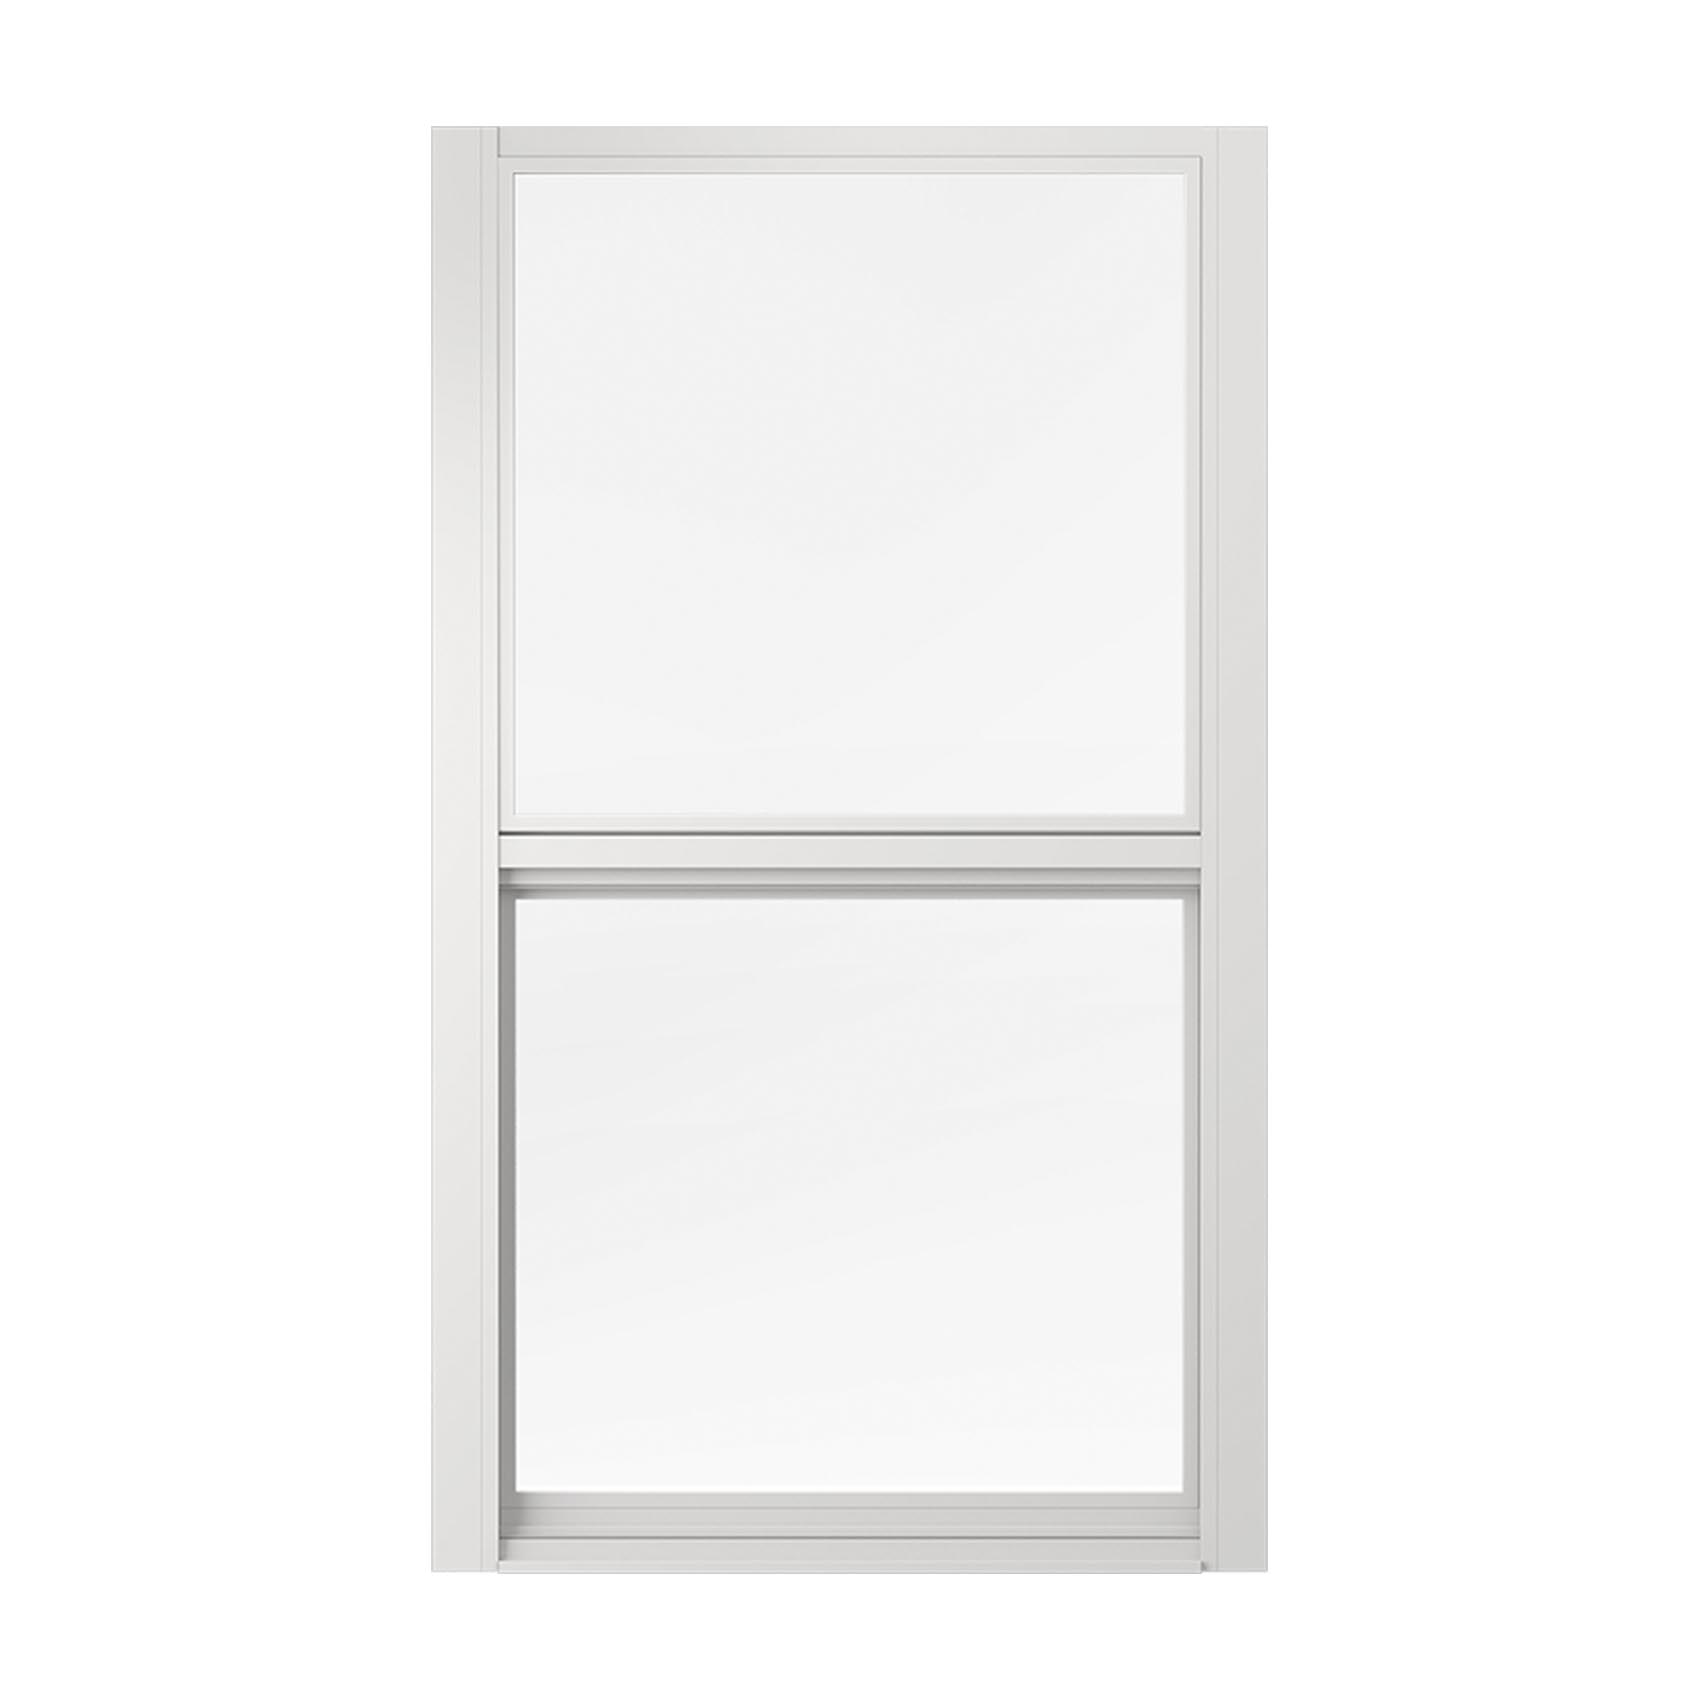 Single-Hung Hurricane Window -- A window with two panes of glass placed vertically-parallel to eachother.